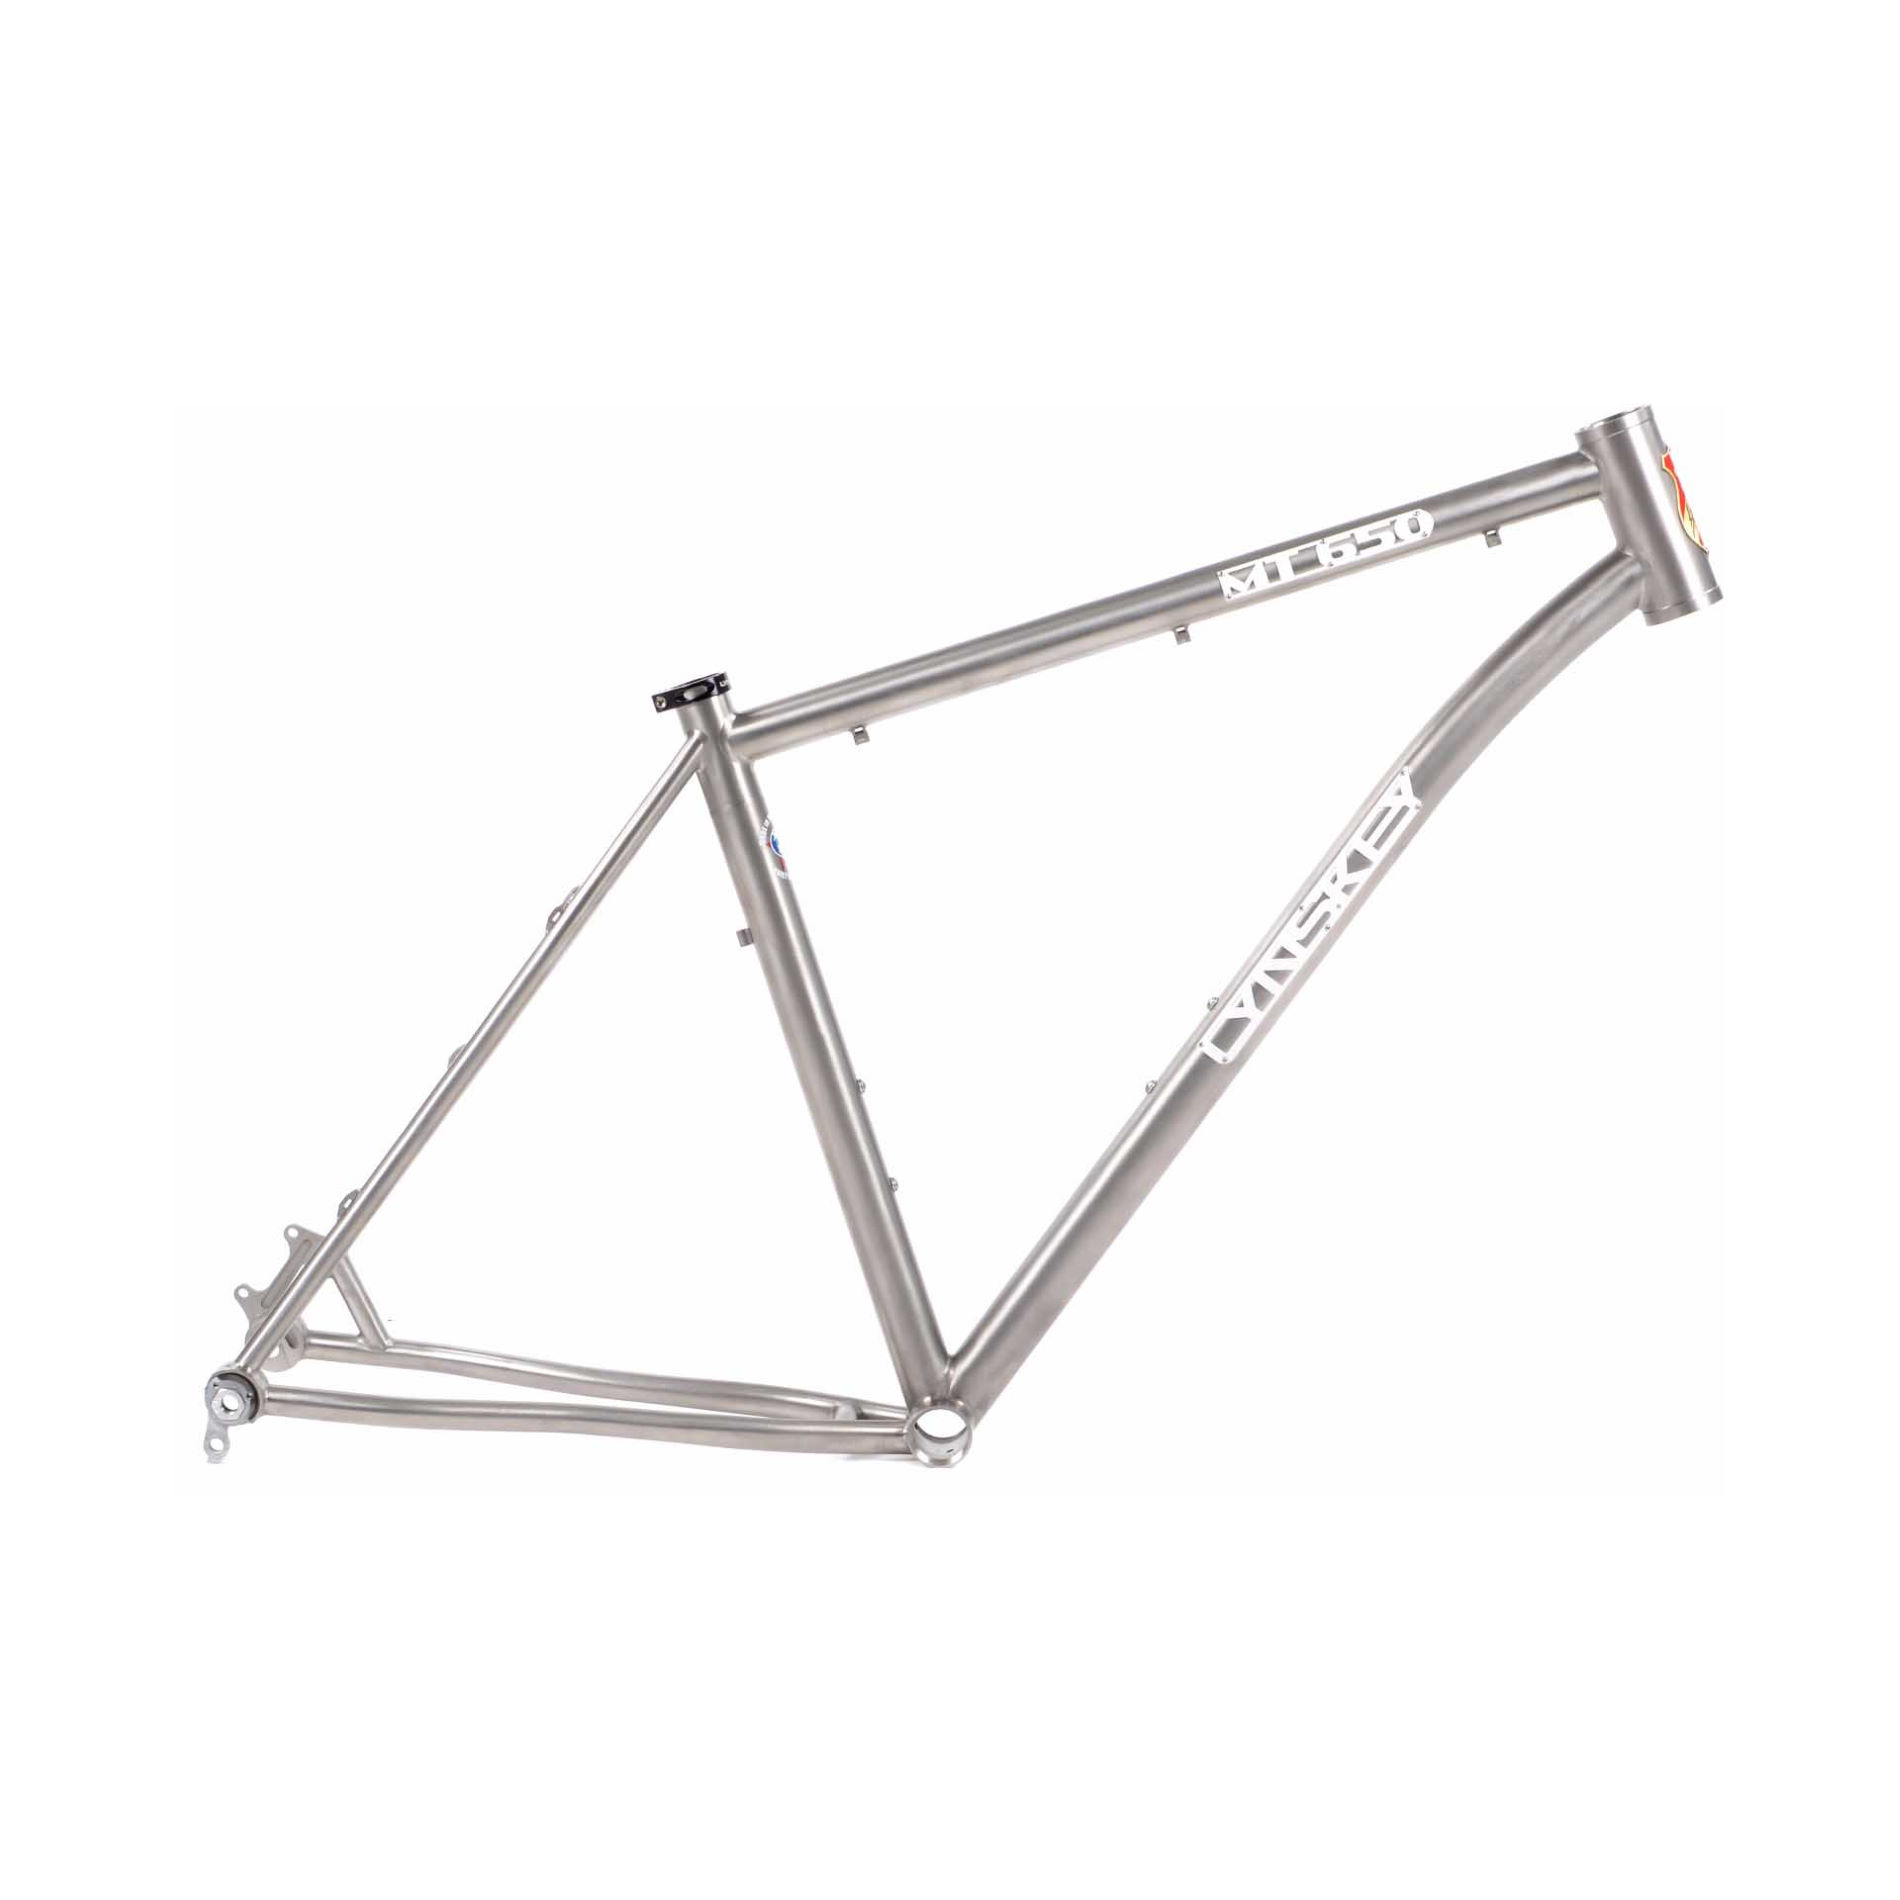 First metal 3D printed bicycle frame manufactured by